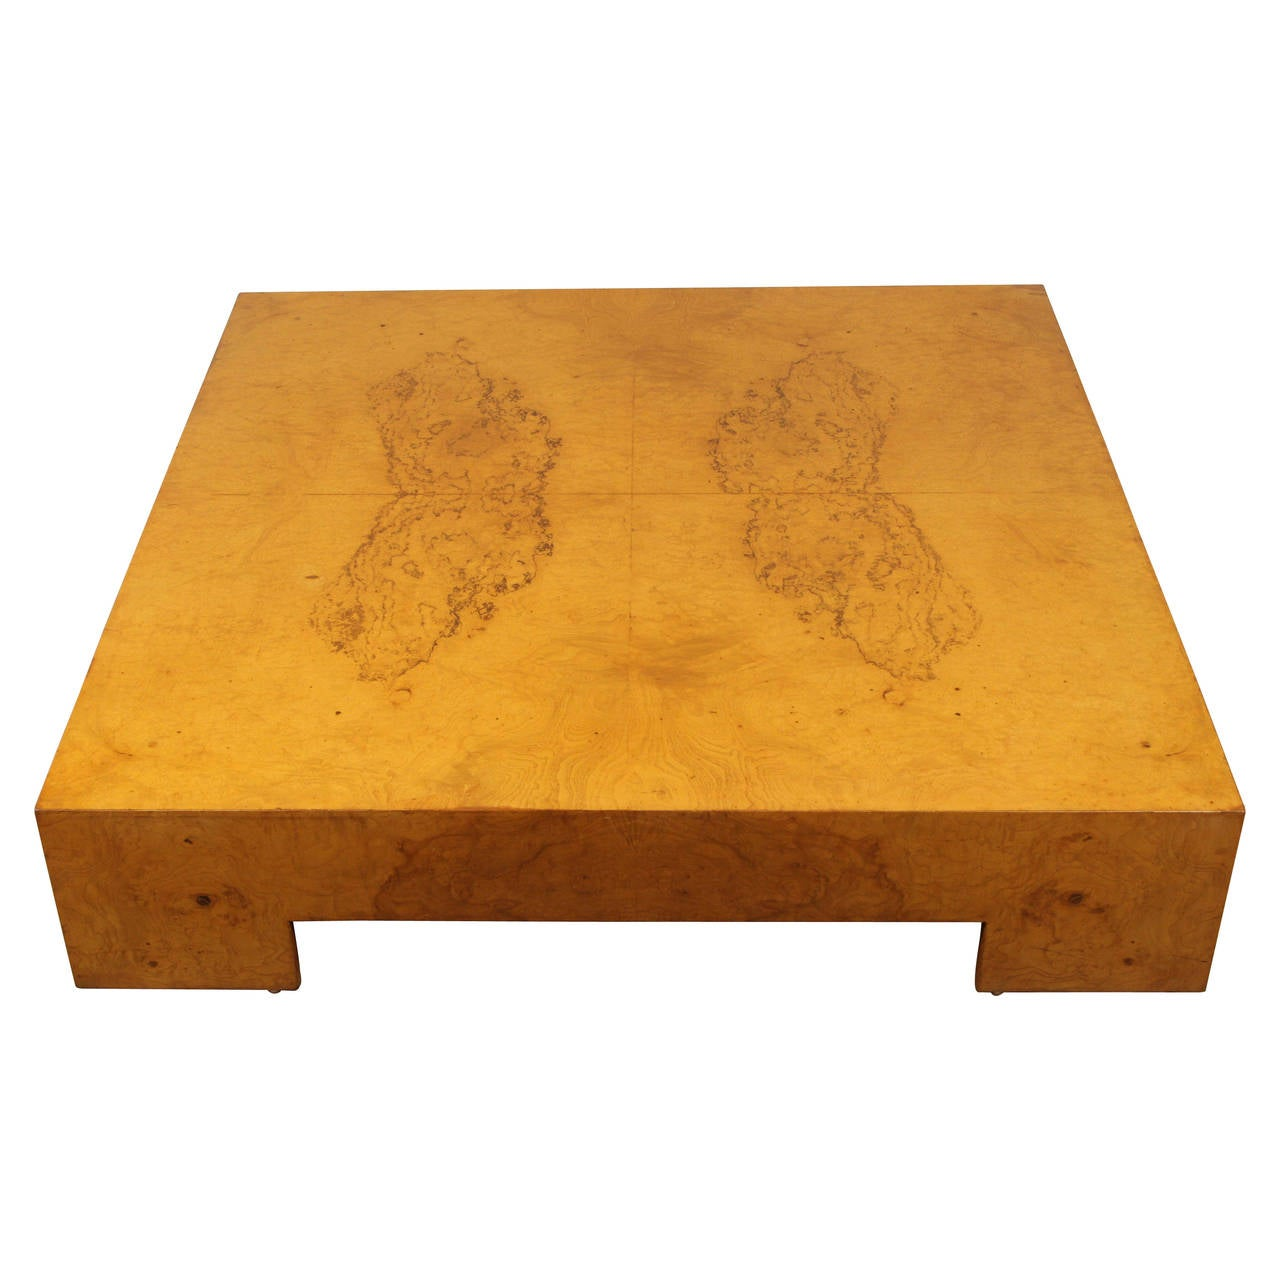 Low Square Burl Wood Coffee Table By Milo Baughman At 1stdibs